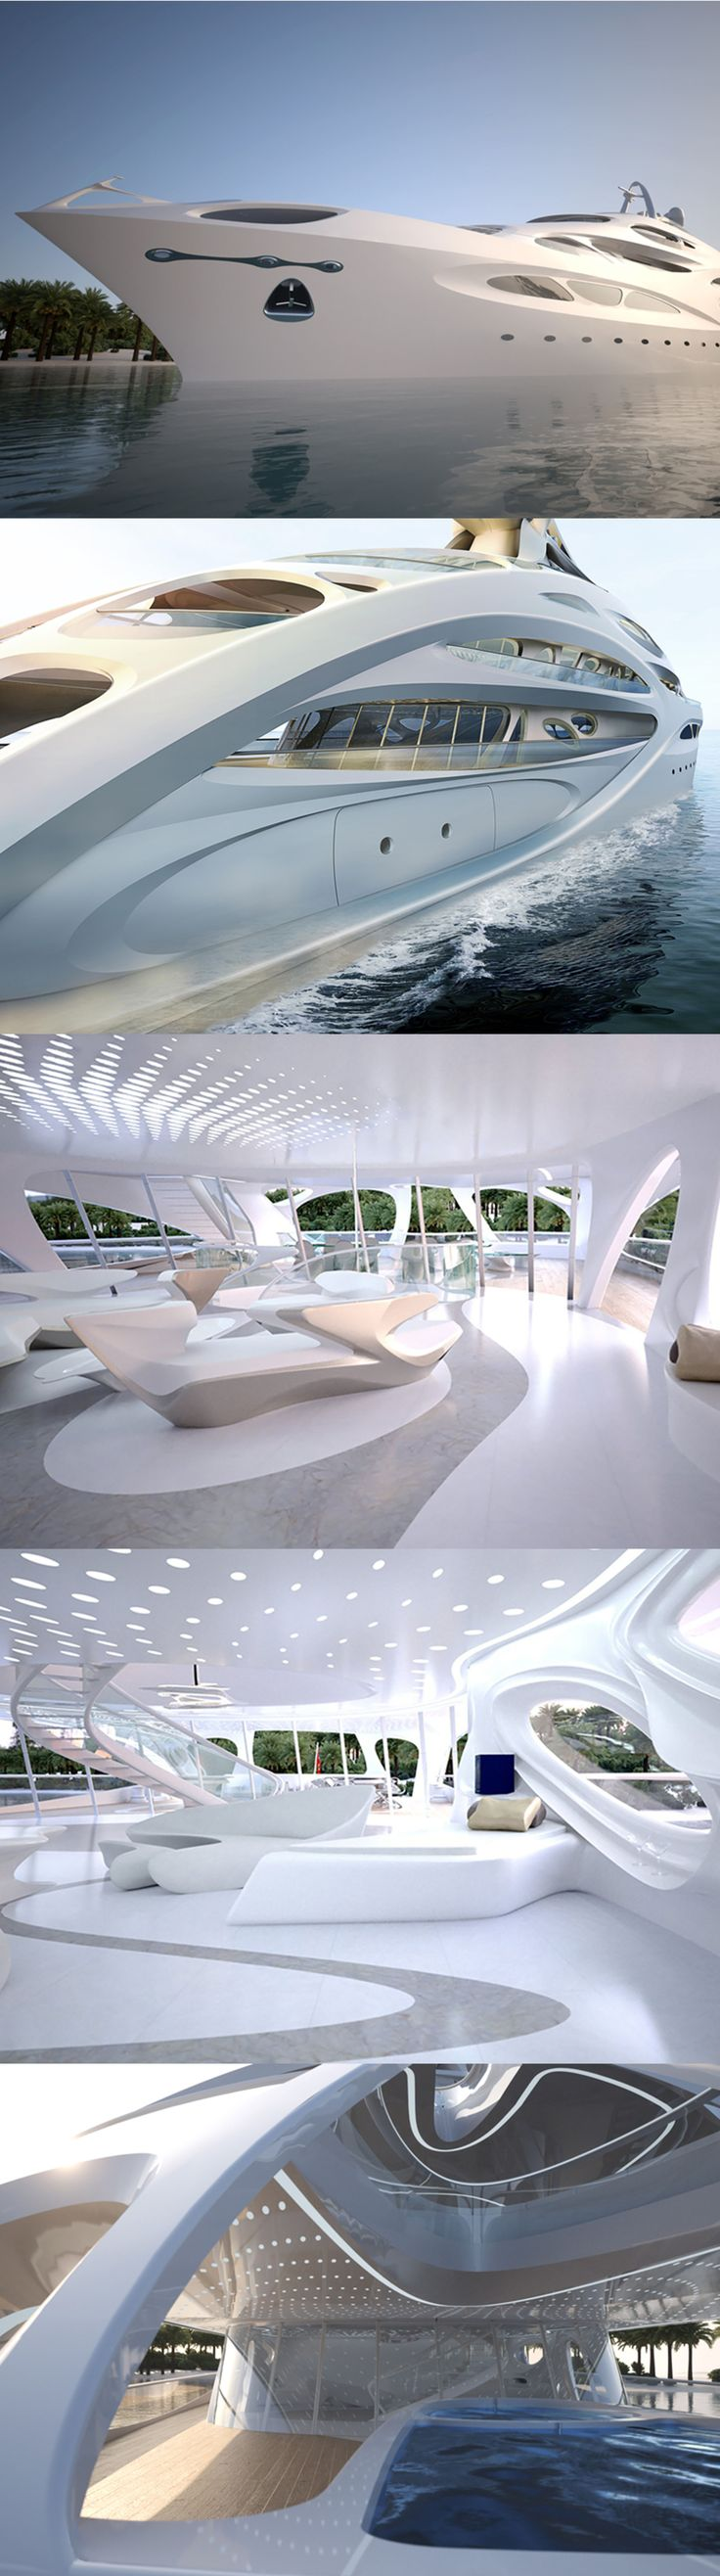 Check out #ZahaHadid's #Superyacht design. Inspiration for your next #refit?  Contact Nic@pureyacht.com & #OwnYourRefiit..